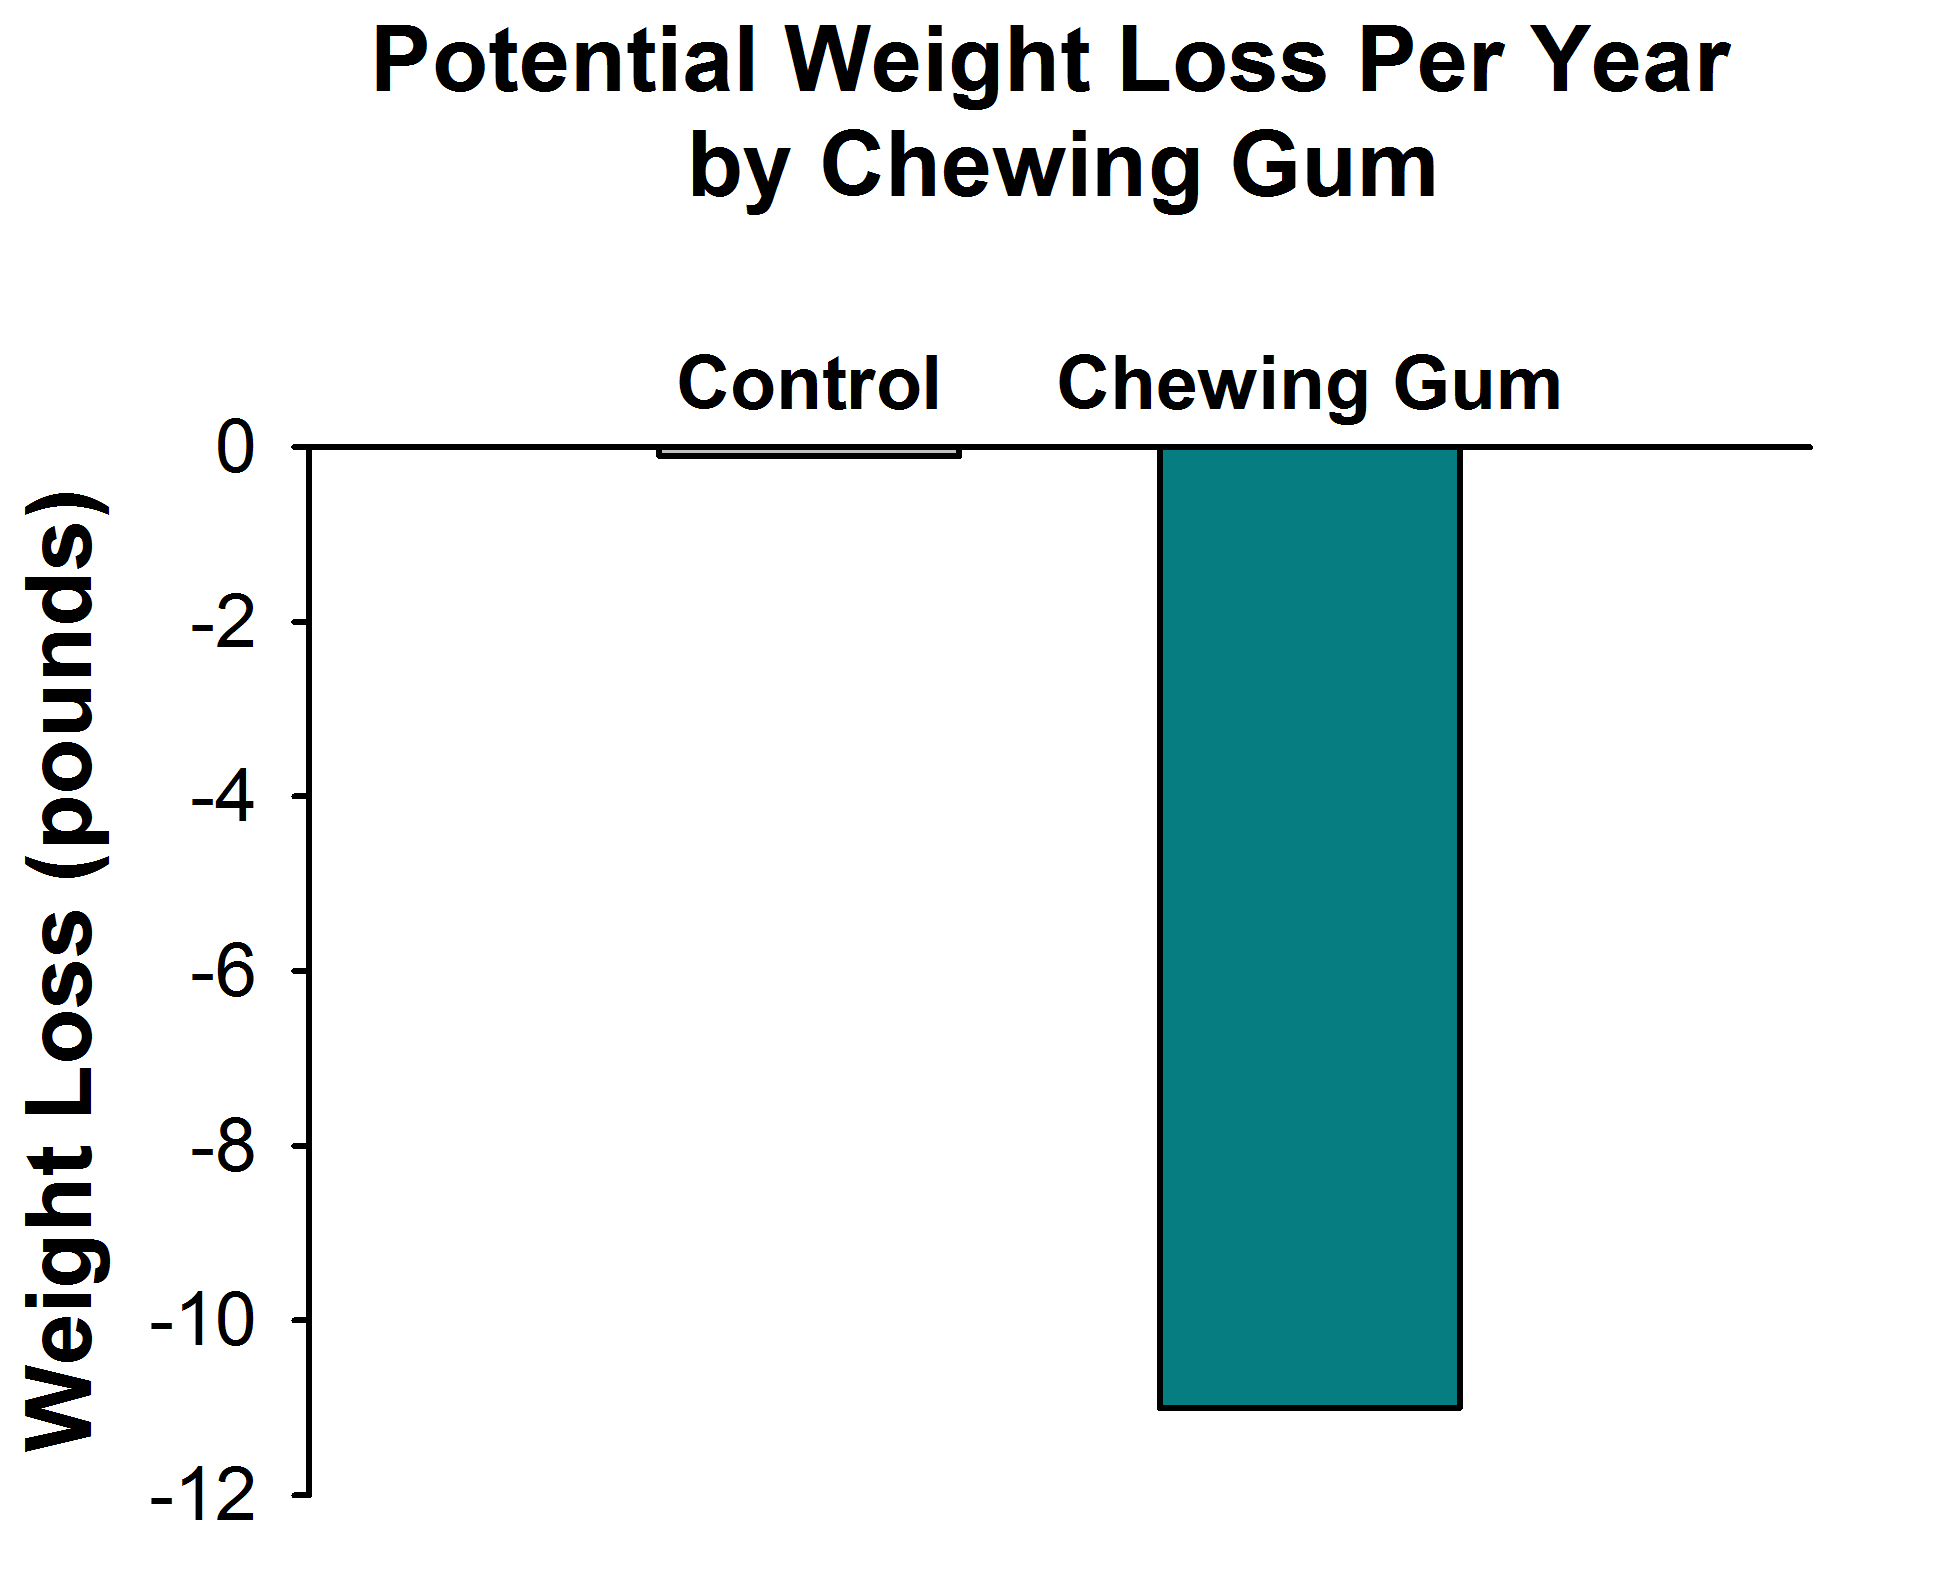 Potential_Weight_Loss_per_Year_with_chewing_gum--Levine_1999_NEJM.jpg